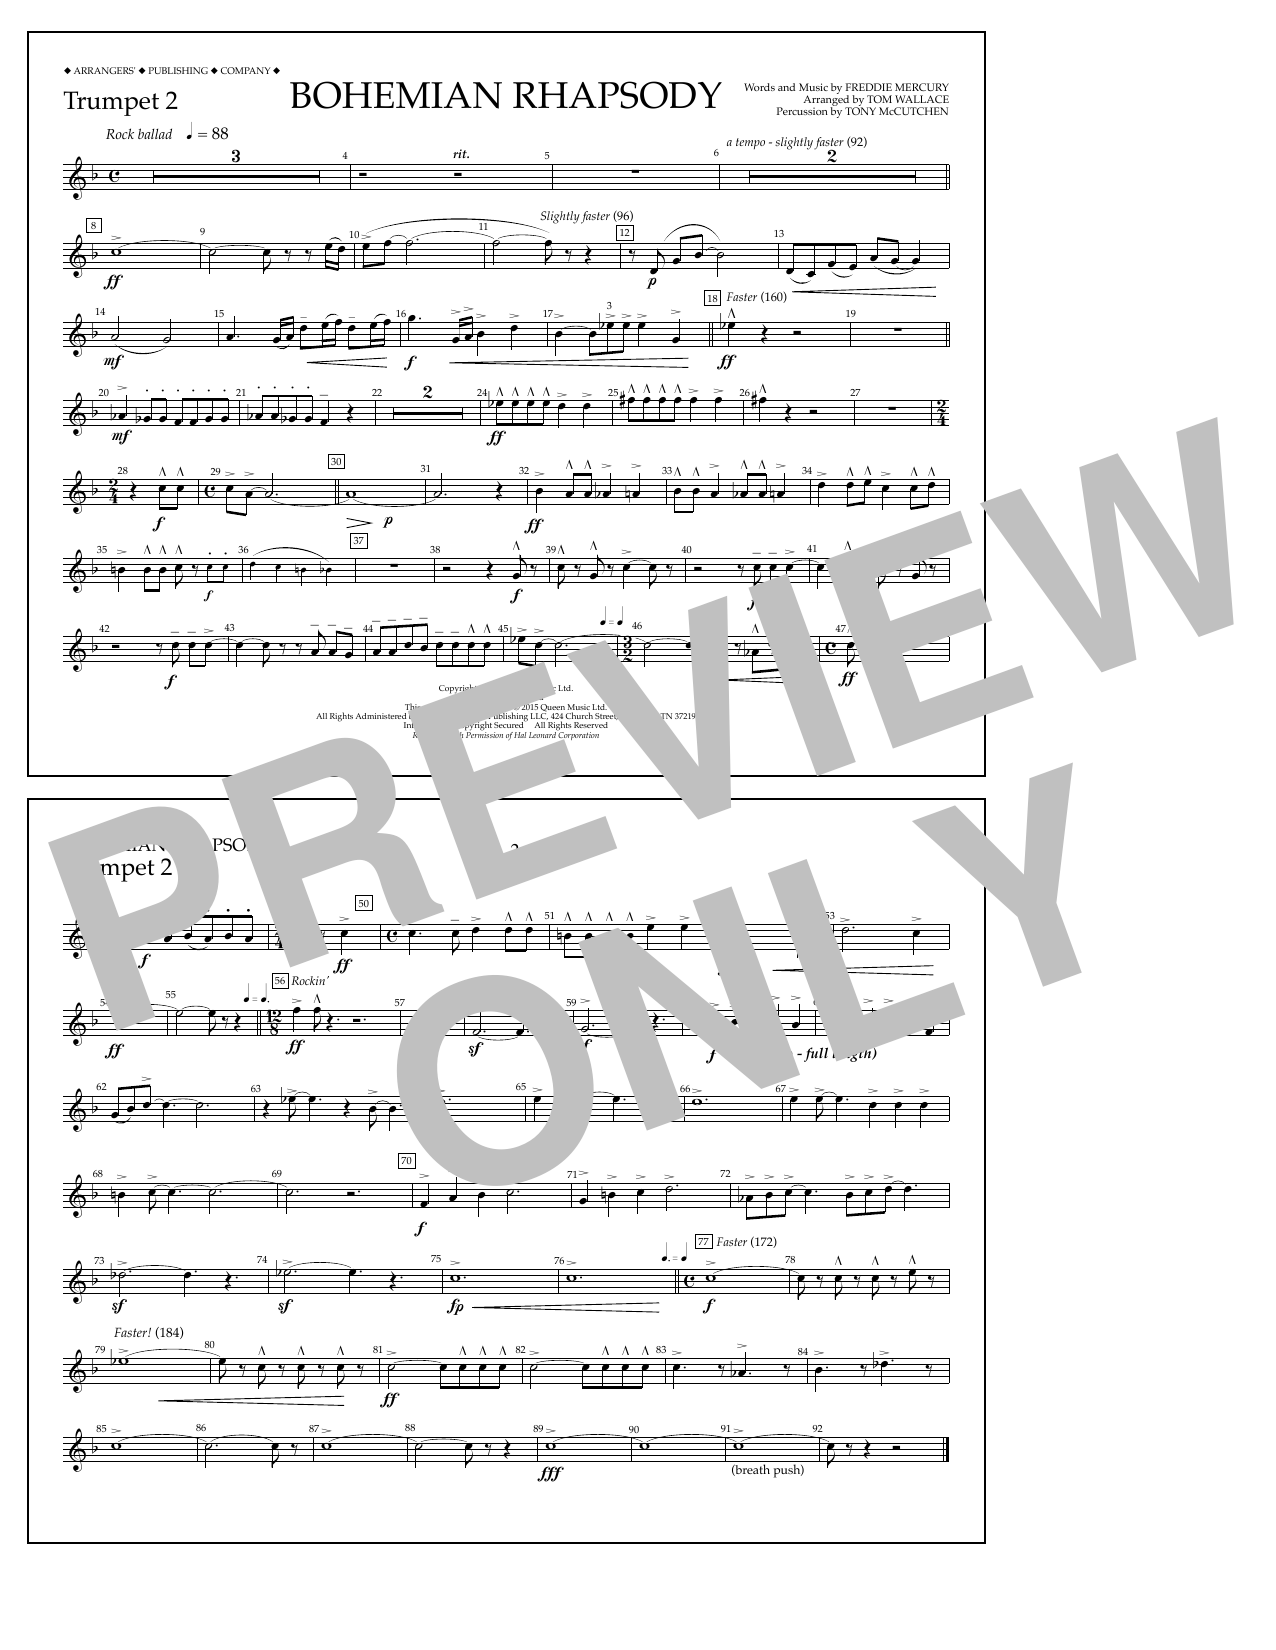 Tom Wallace Bohemian Rhapsody - Trumpet 2 sheet music notes and chords. Download Printable PDF.